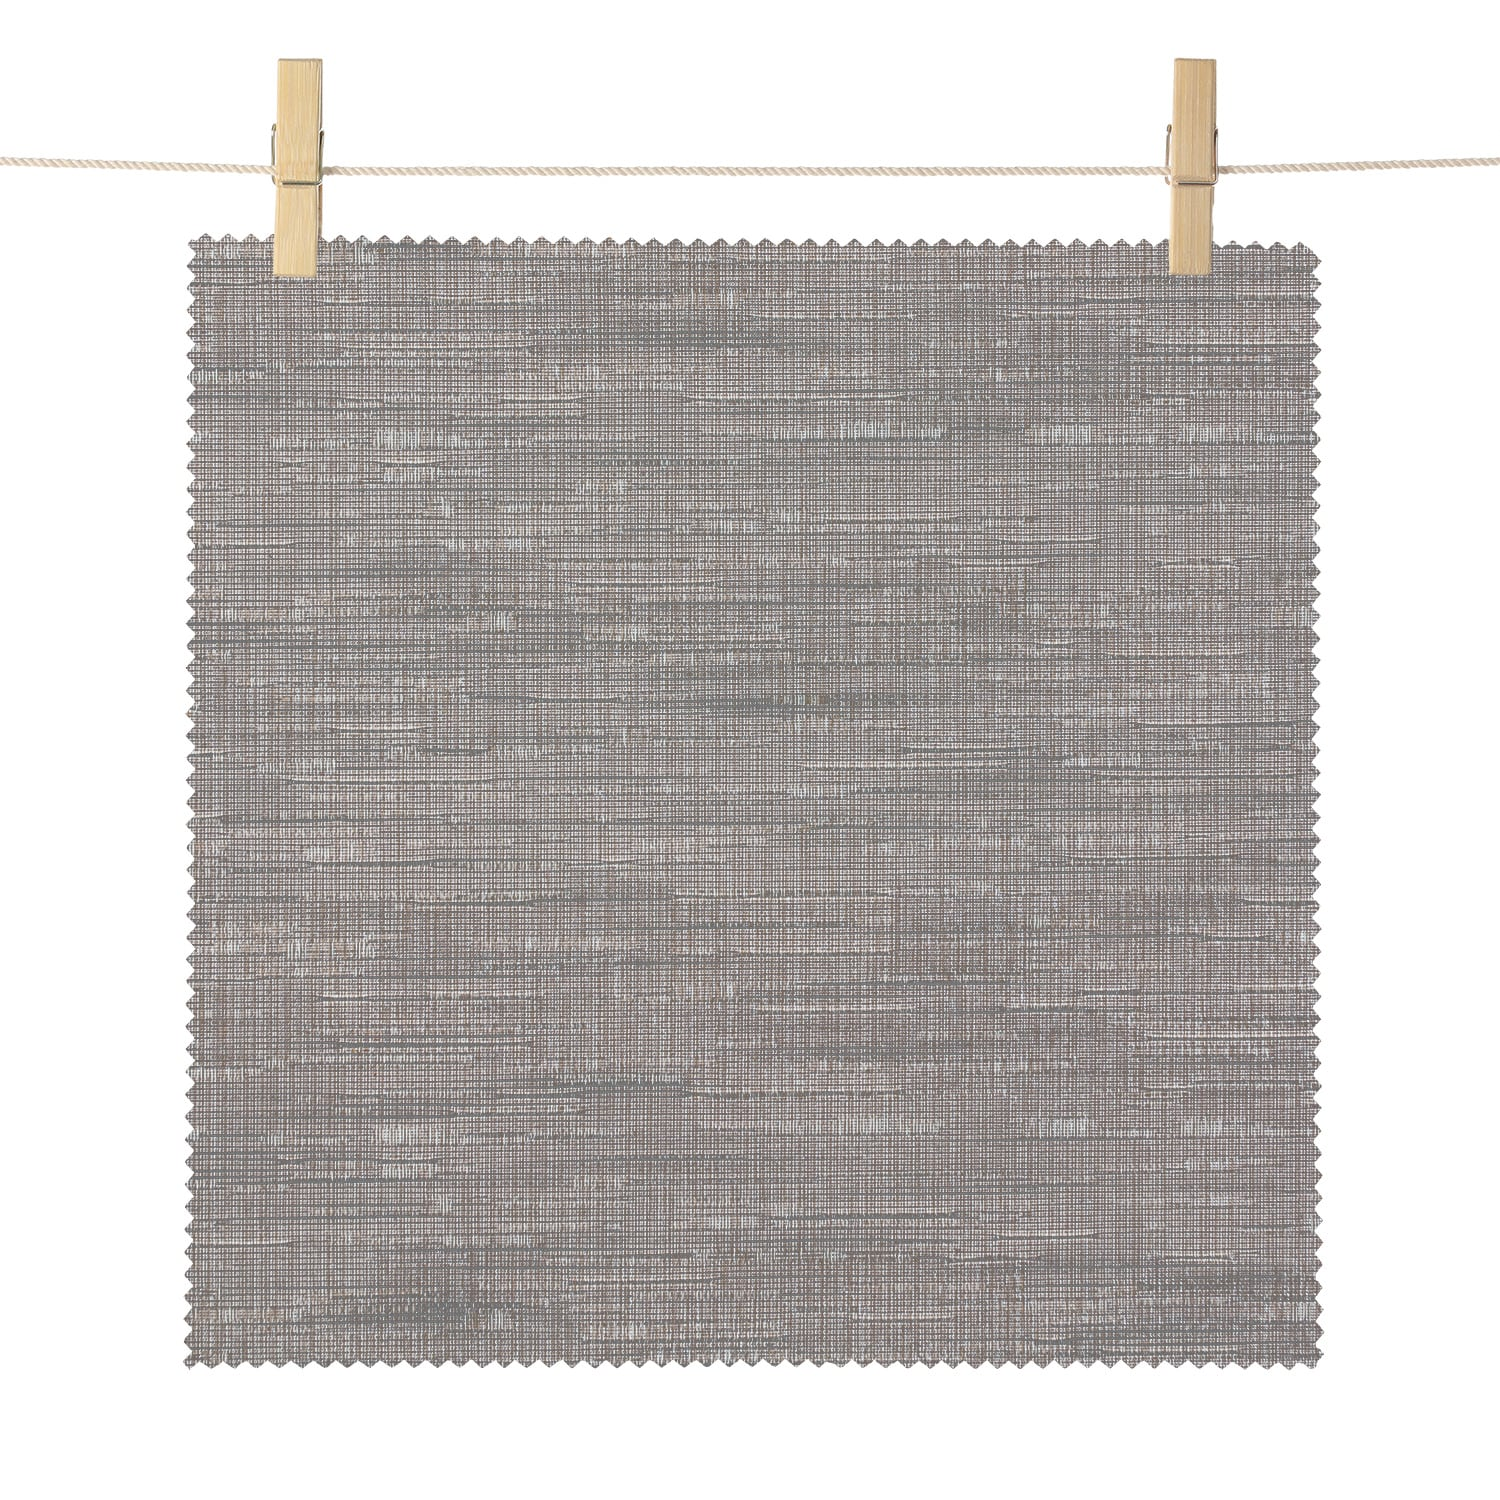 Saratoga Slate Bedford Textured Light Filtering Roller Shade Swatch